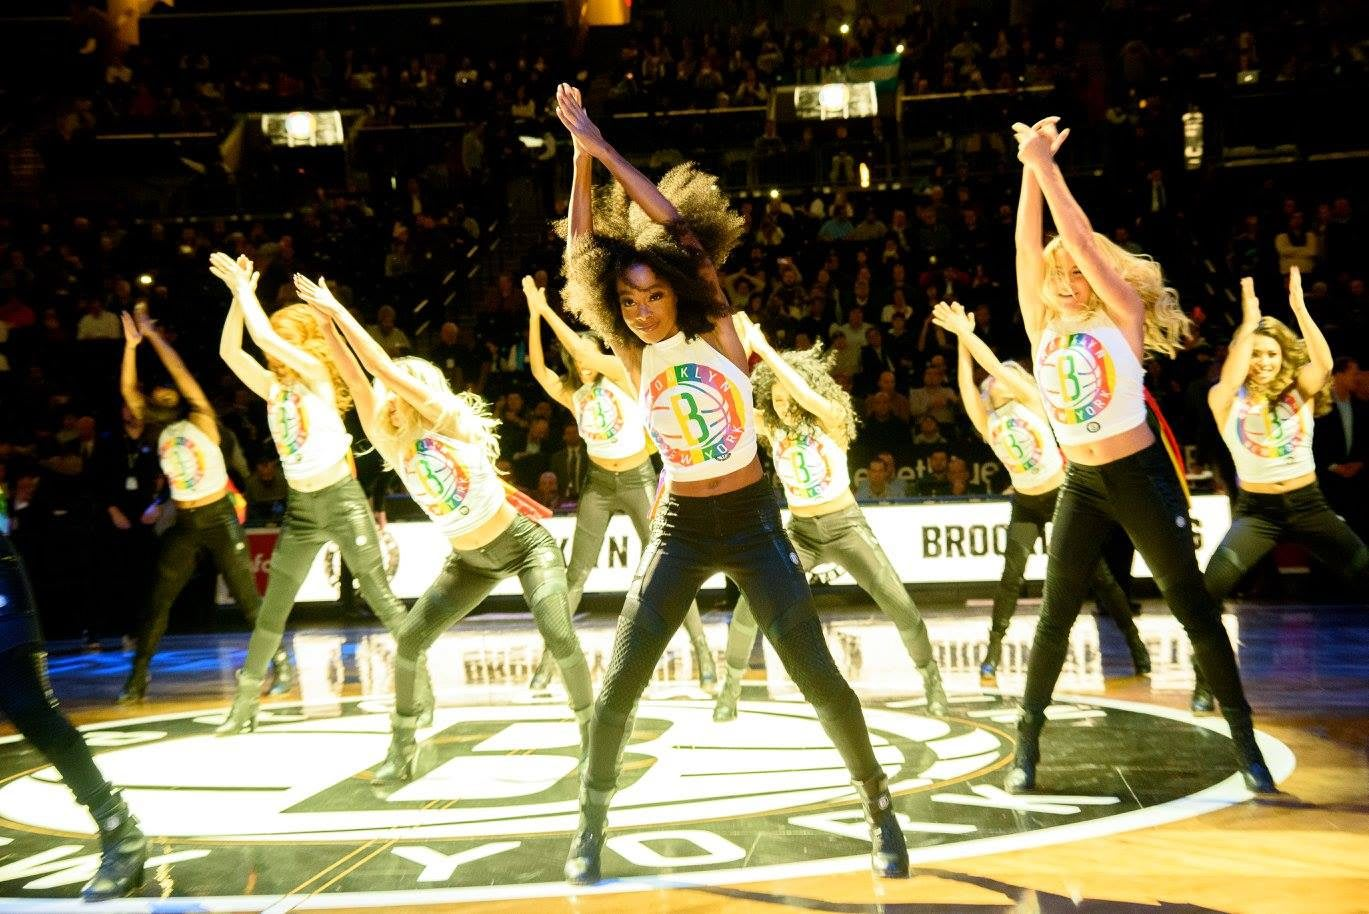 Athlete Ally representatives dancing at the NBA Brooklyn Nets game, inclusion, diversity, LGBTQ, sports, basketball